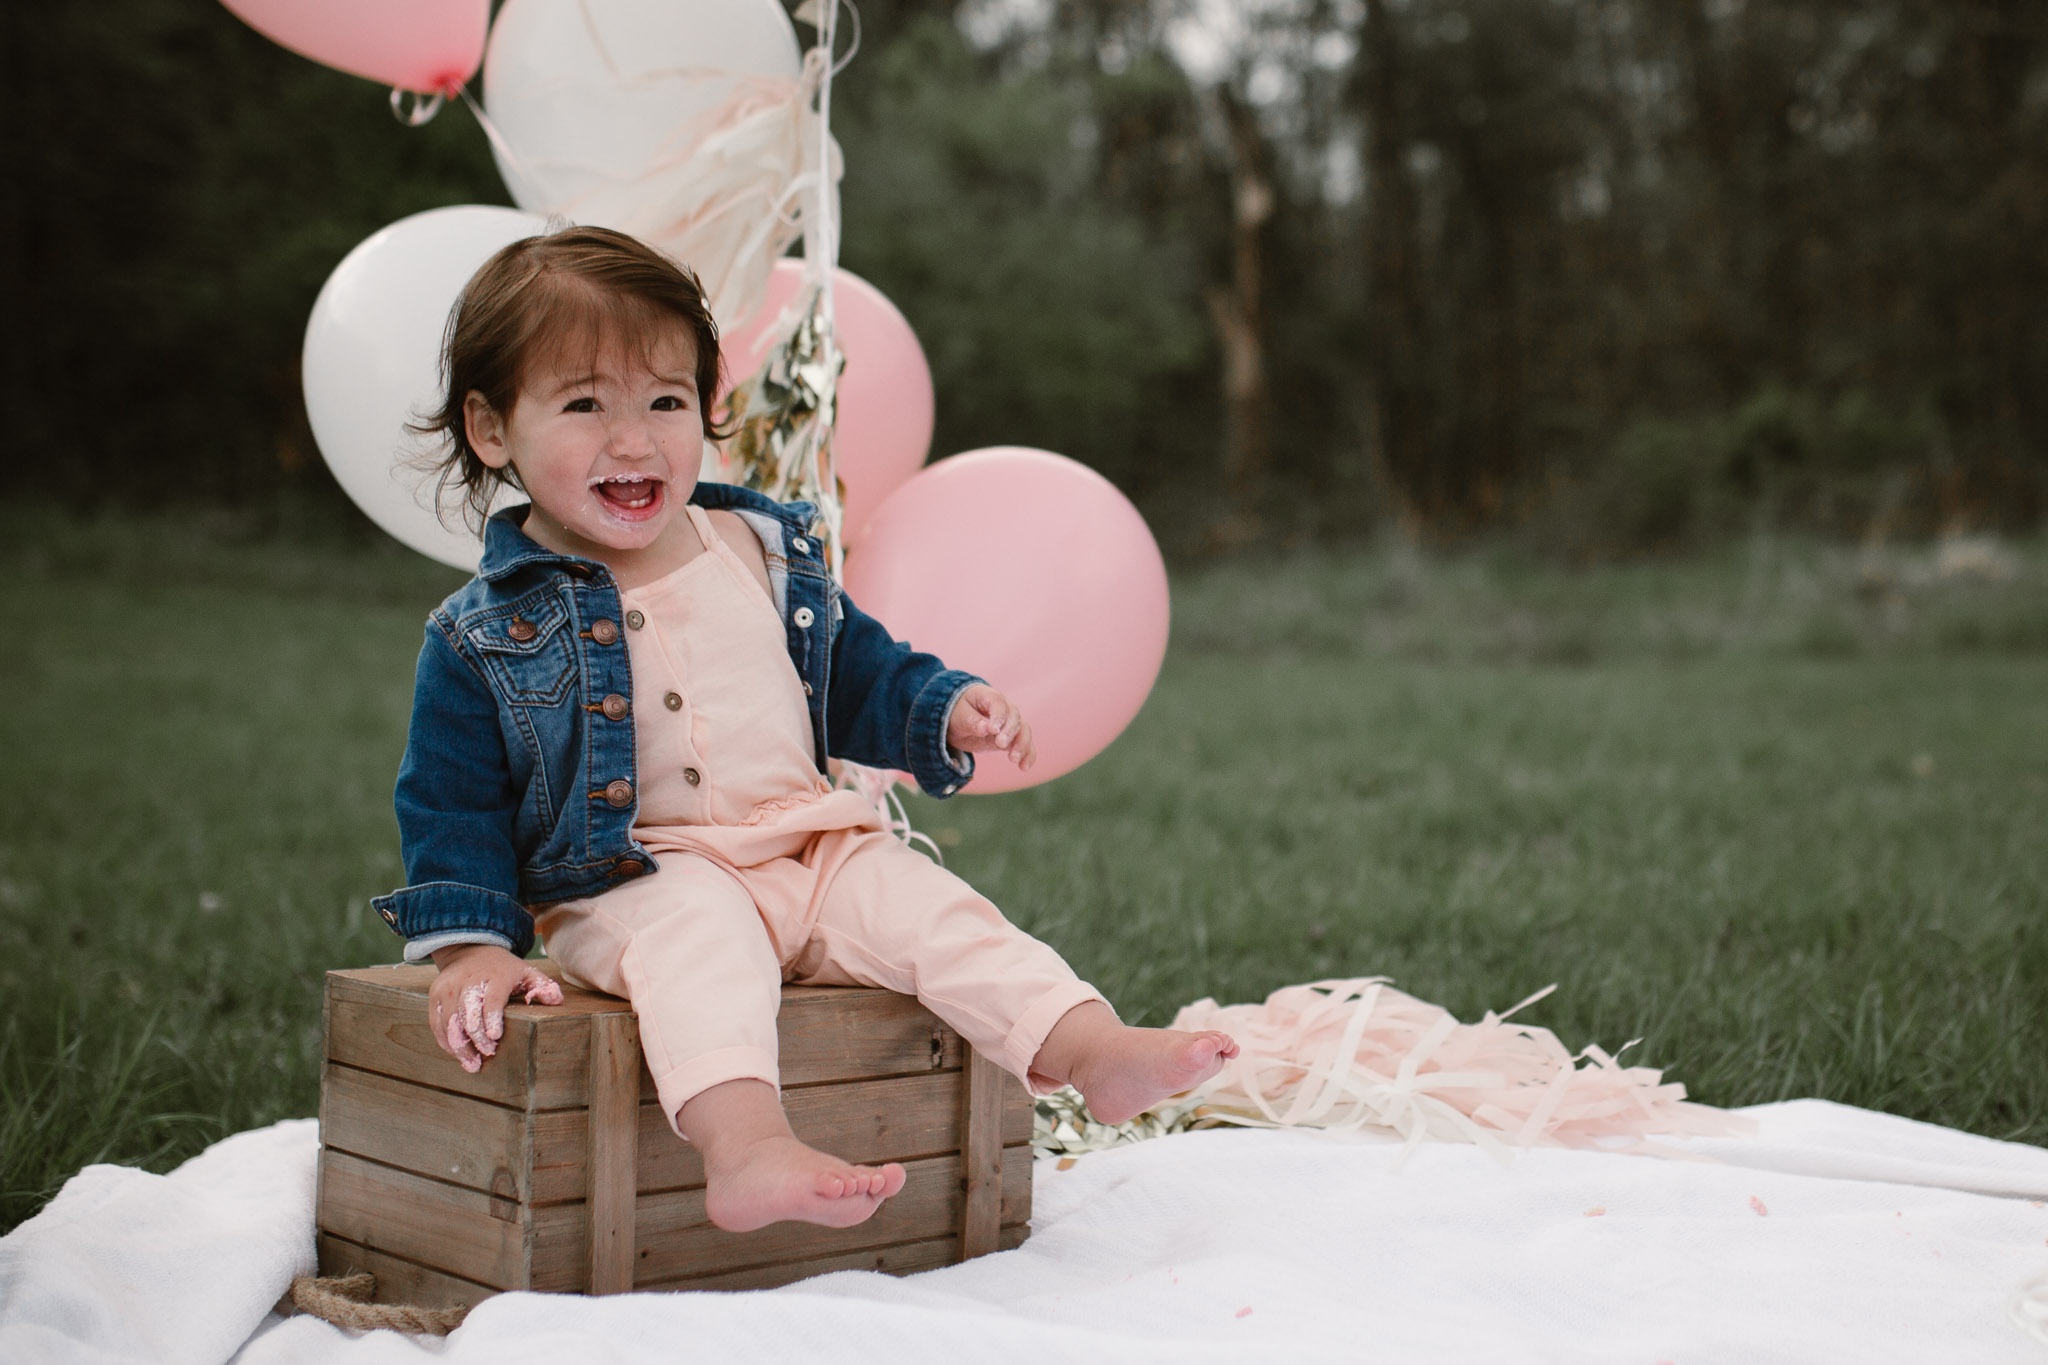 One year old birthday girl sits on a wooden crate with balloons behind her and icing on her hands and face at Red Rock Overlook in Leesburg, VA